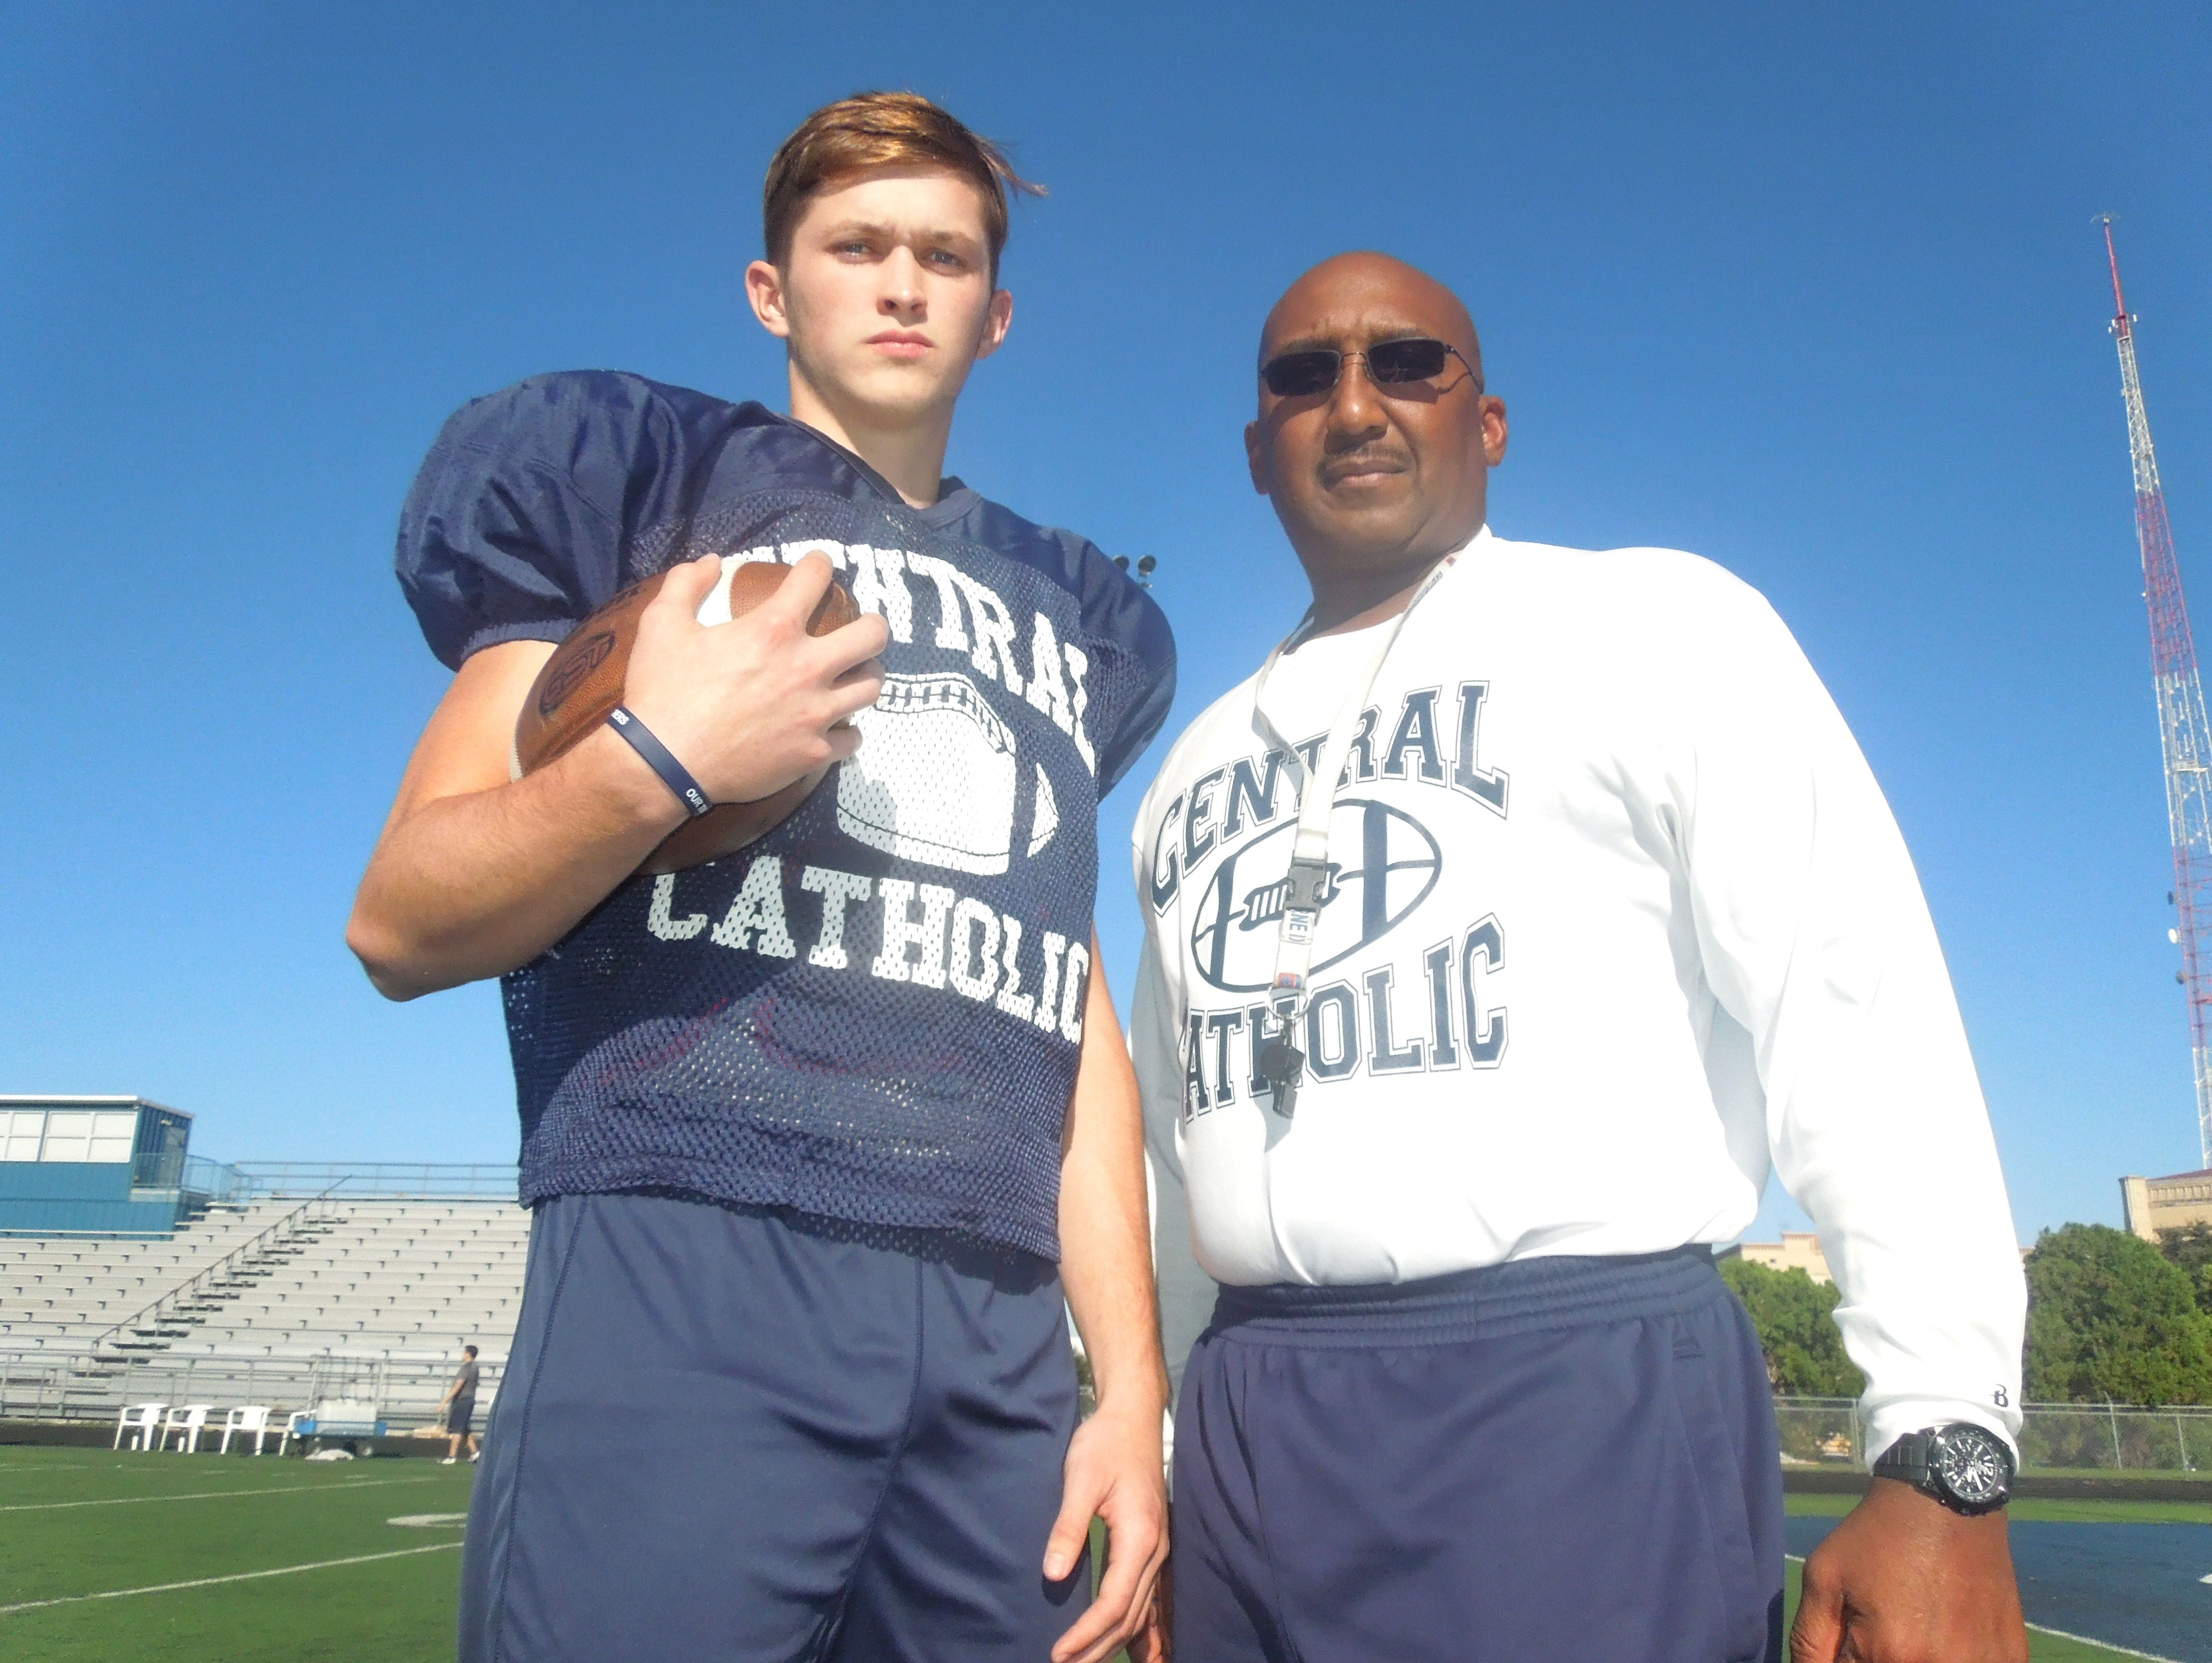 Central Catholic head coach L.D. Green says Jimmy Morton earned the respect of his new teammates quickly after transferring from Harlingen South this summer.